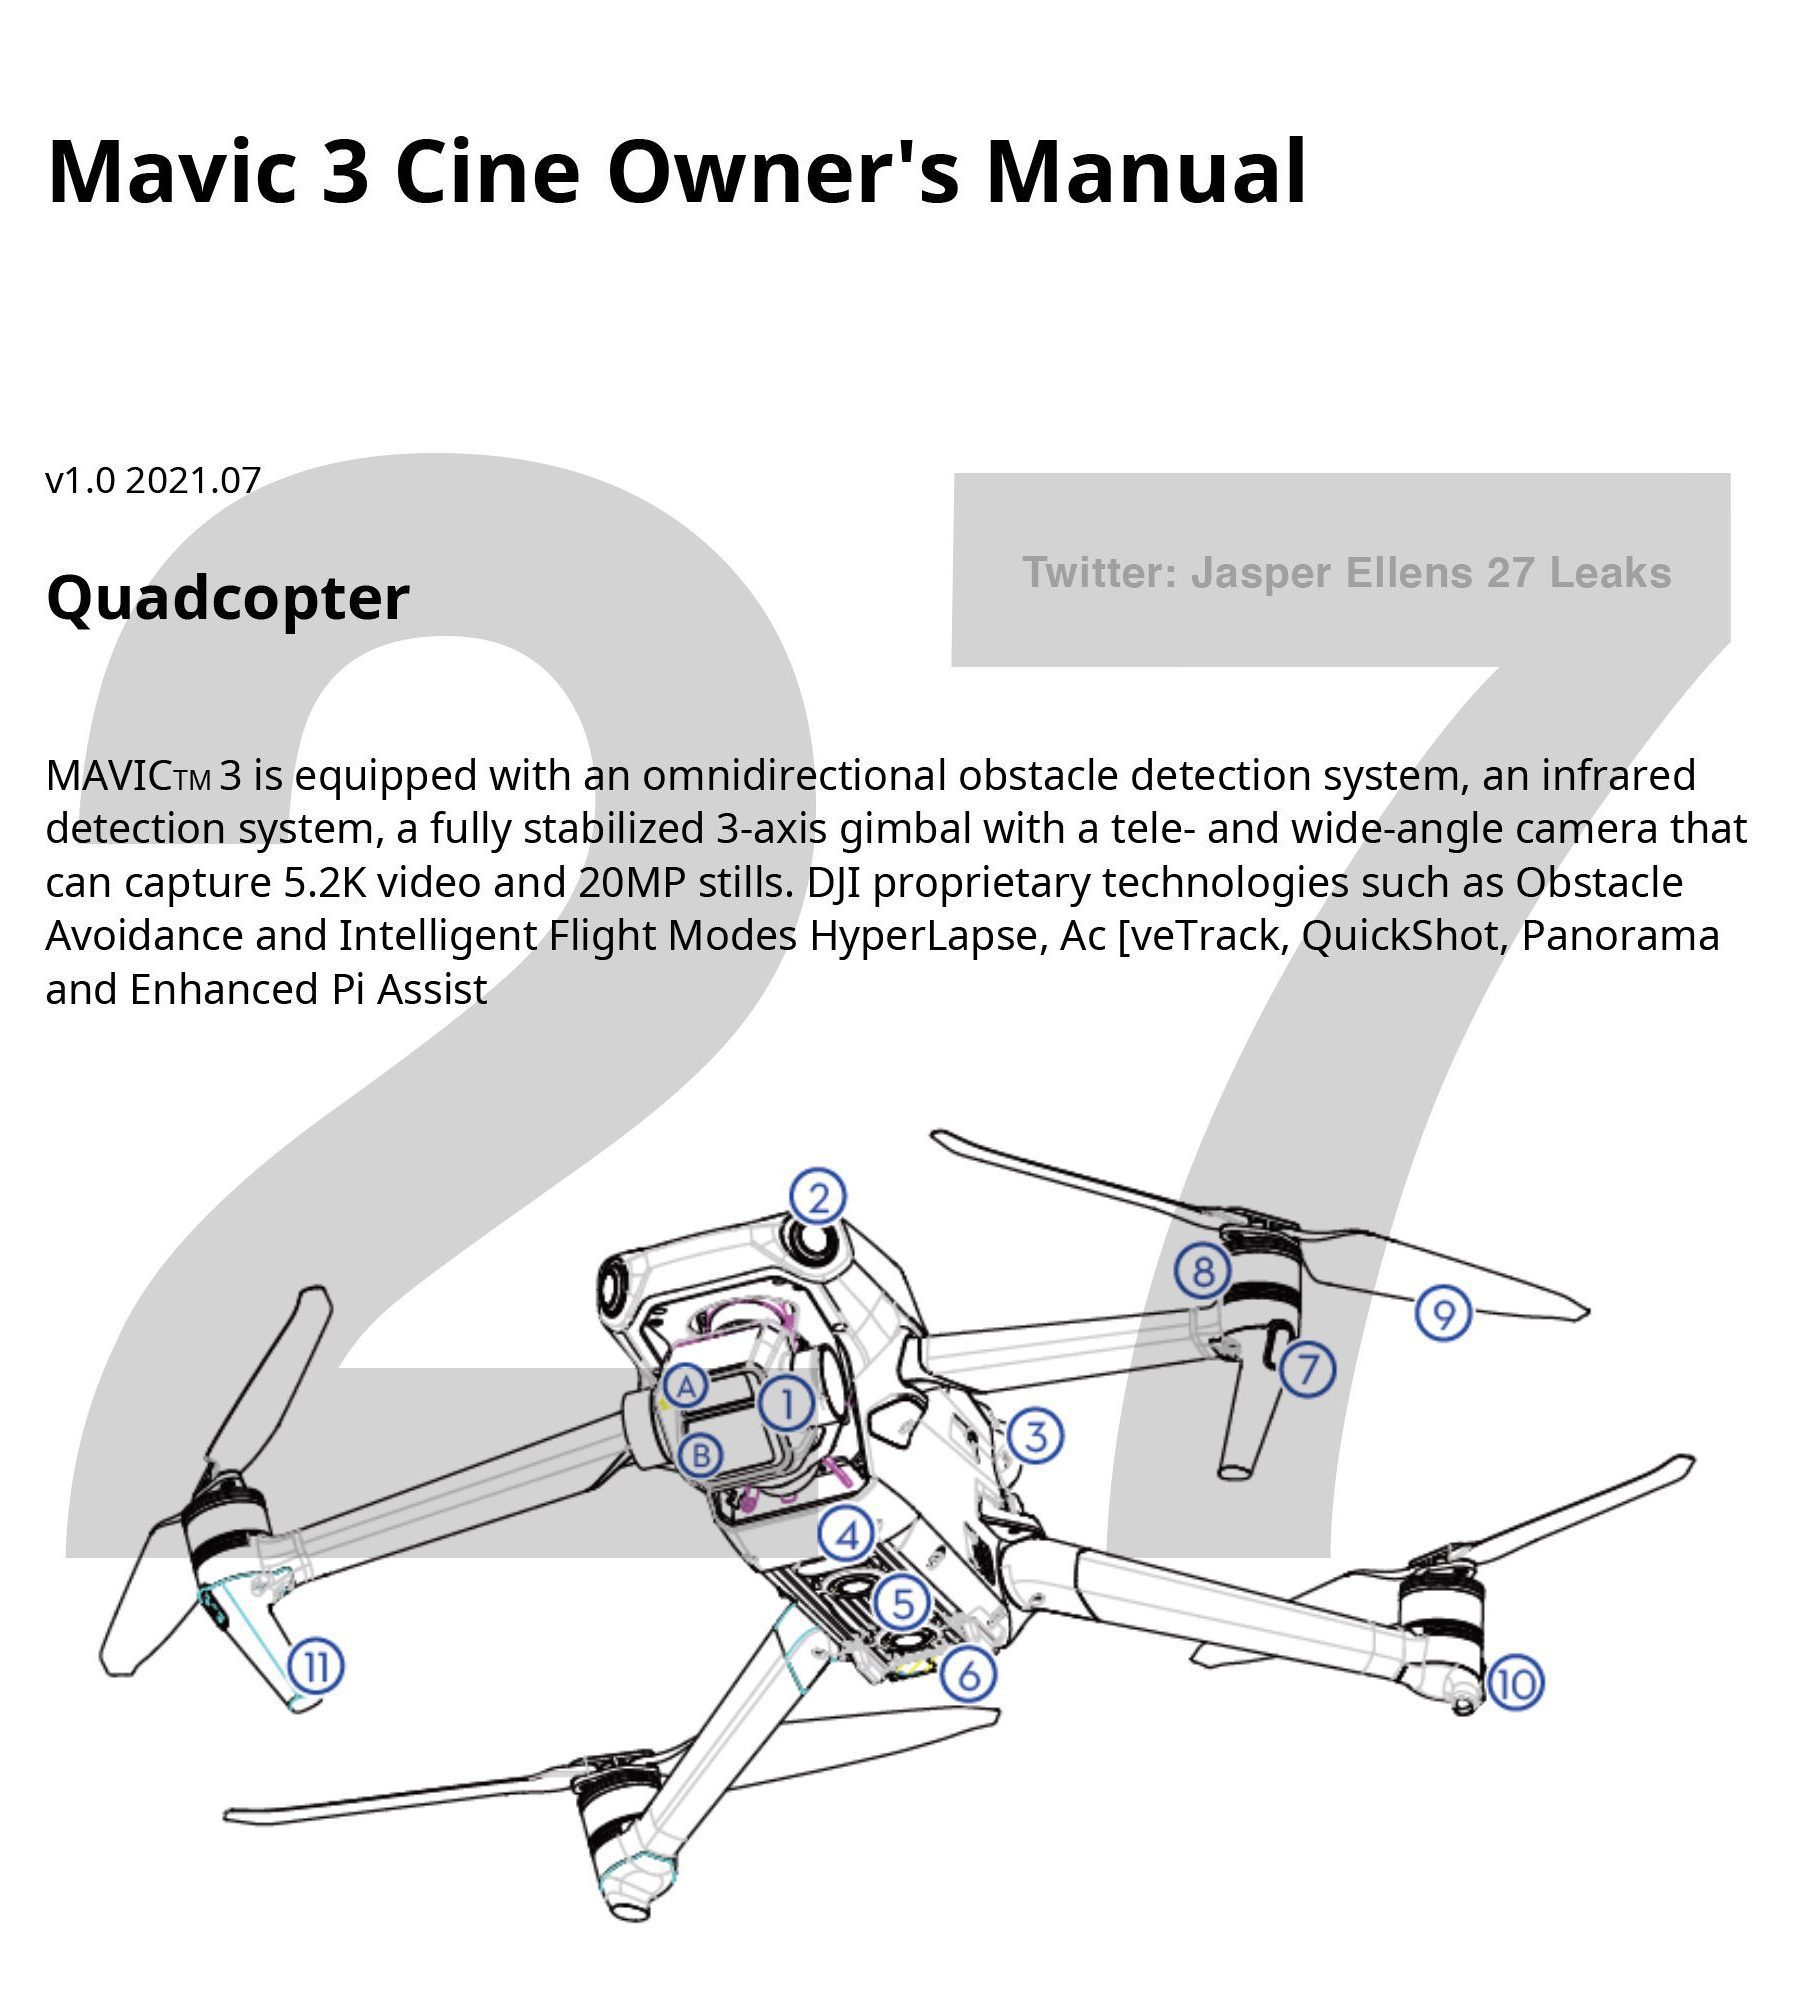 DJI Mavic 3 Pro manual images and specs leaked ahead of launch